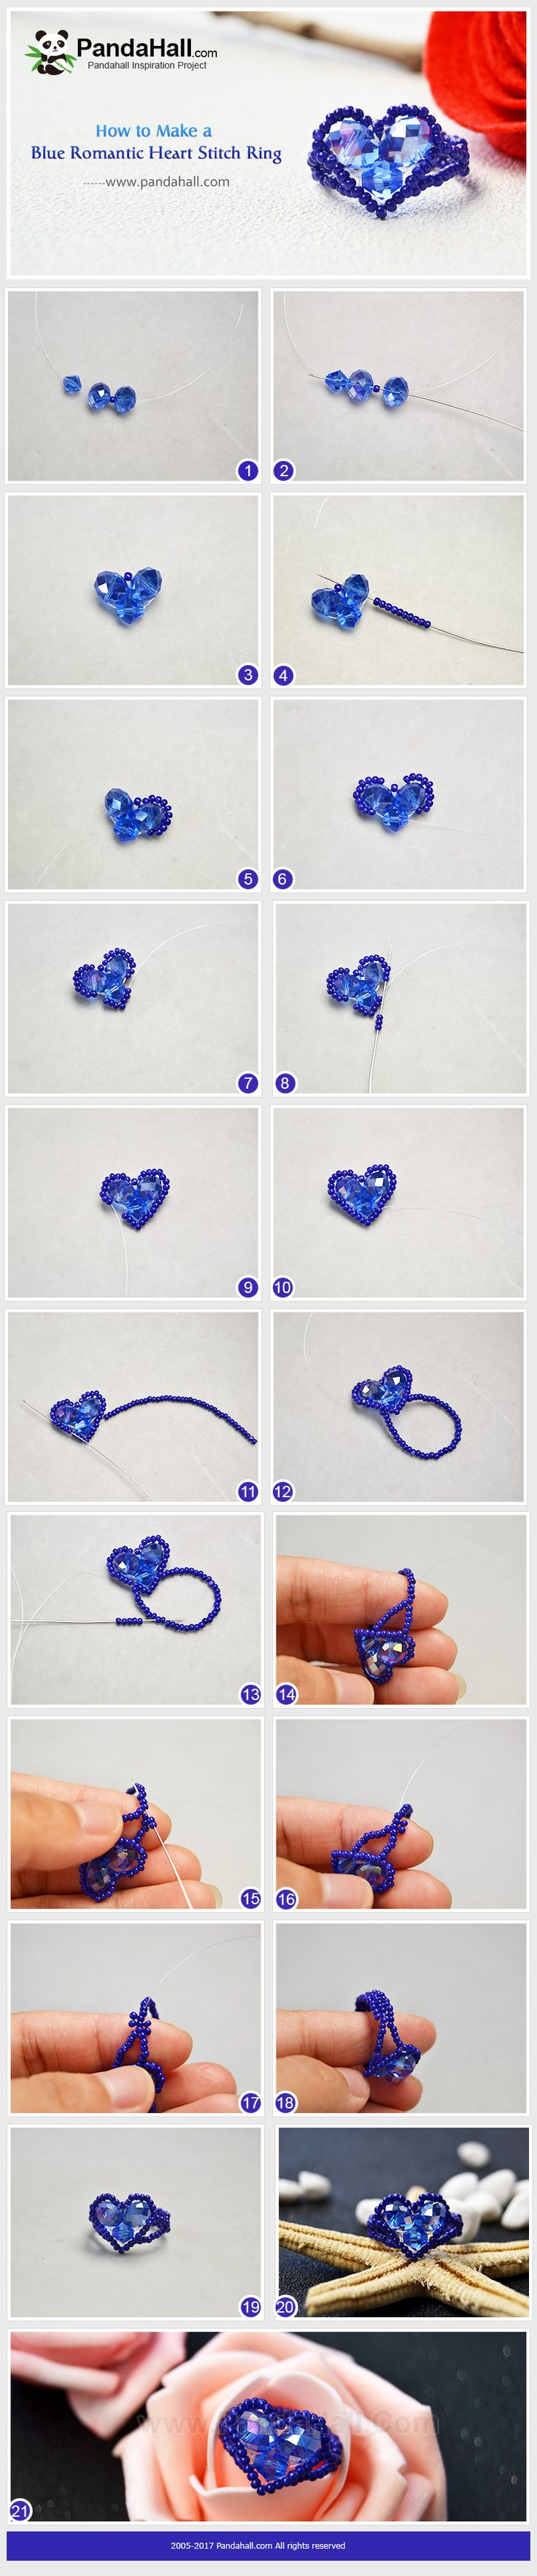 Blue Romantic Heart Stitch Ring As Valentine's Day is approaching, today we teach you to stitch a heart-shaped ring with seed beads and glass beads for your lover to show your deep love. #PandaHall #howto #freetutorial #beadedring #diyrings #glassbeads